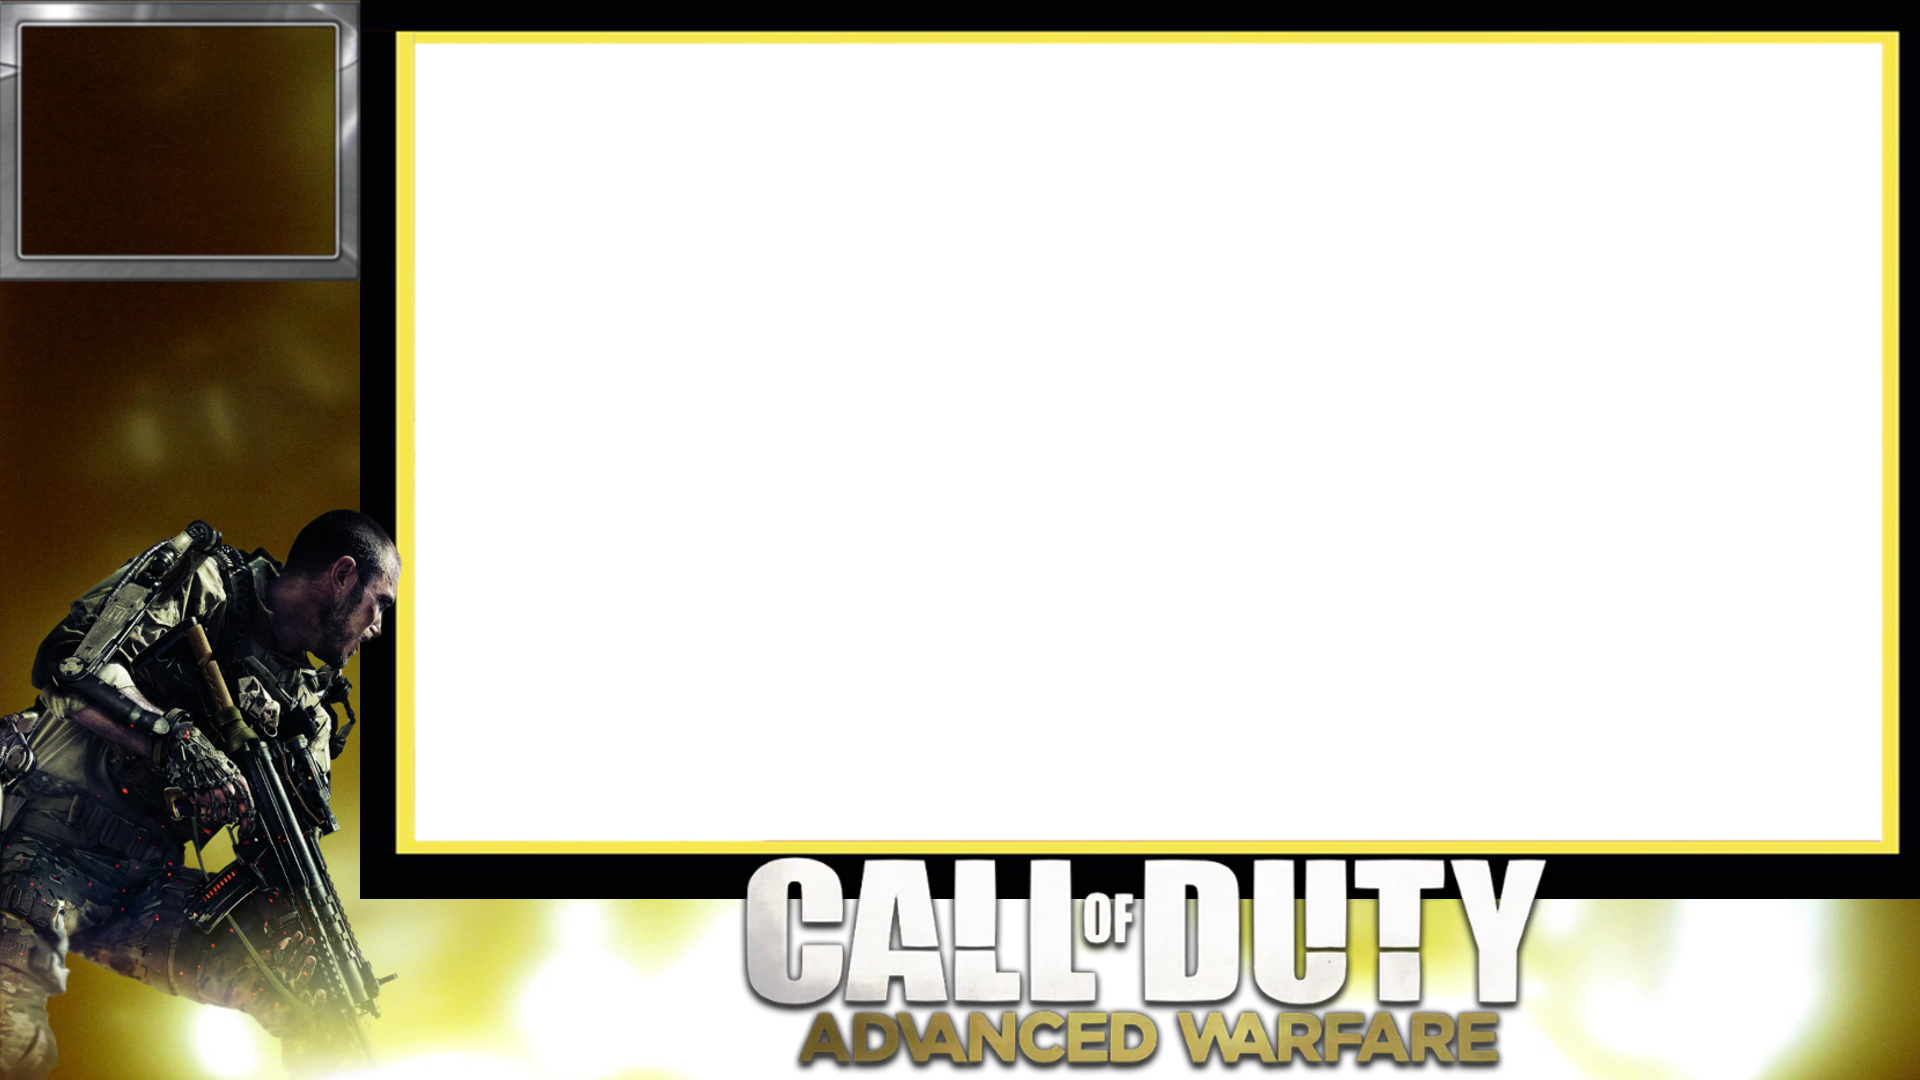 Advanced Warfare Background for Twitch and YouTube | Twitch ...